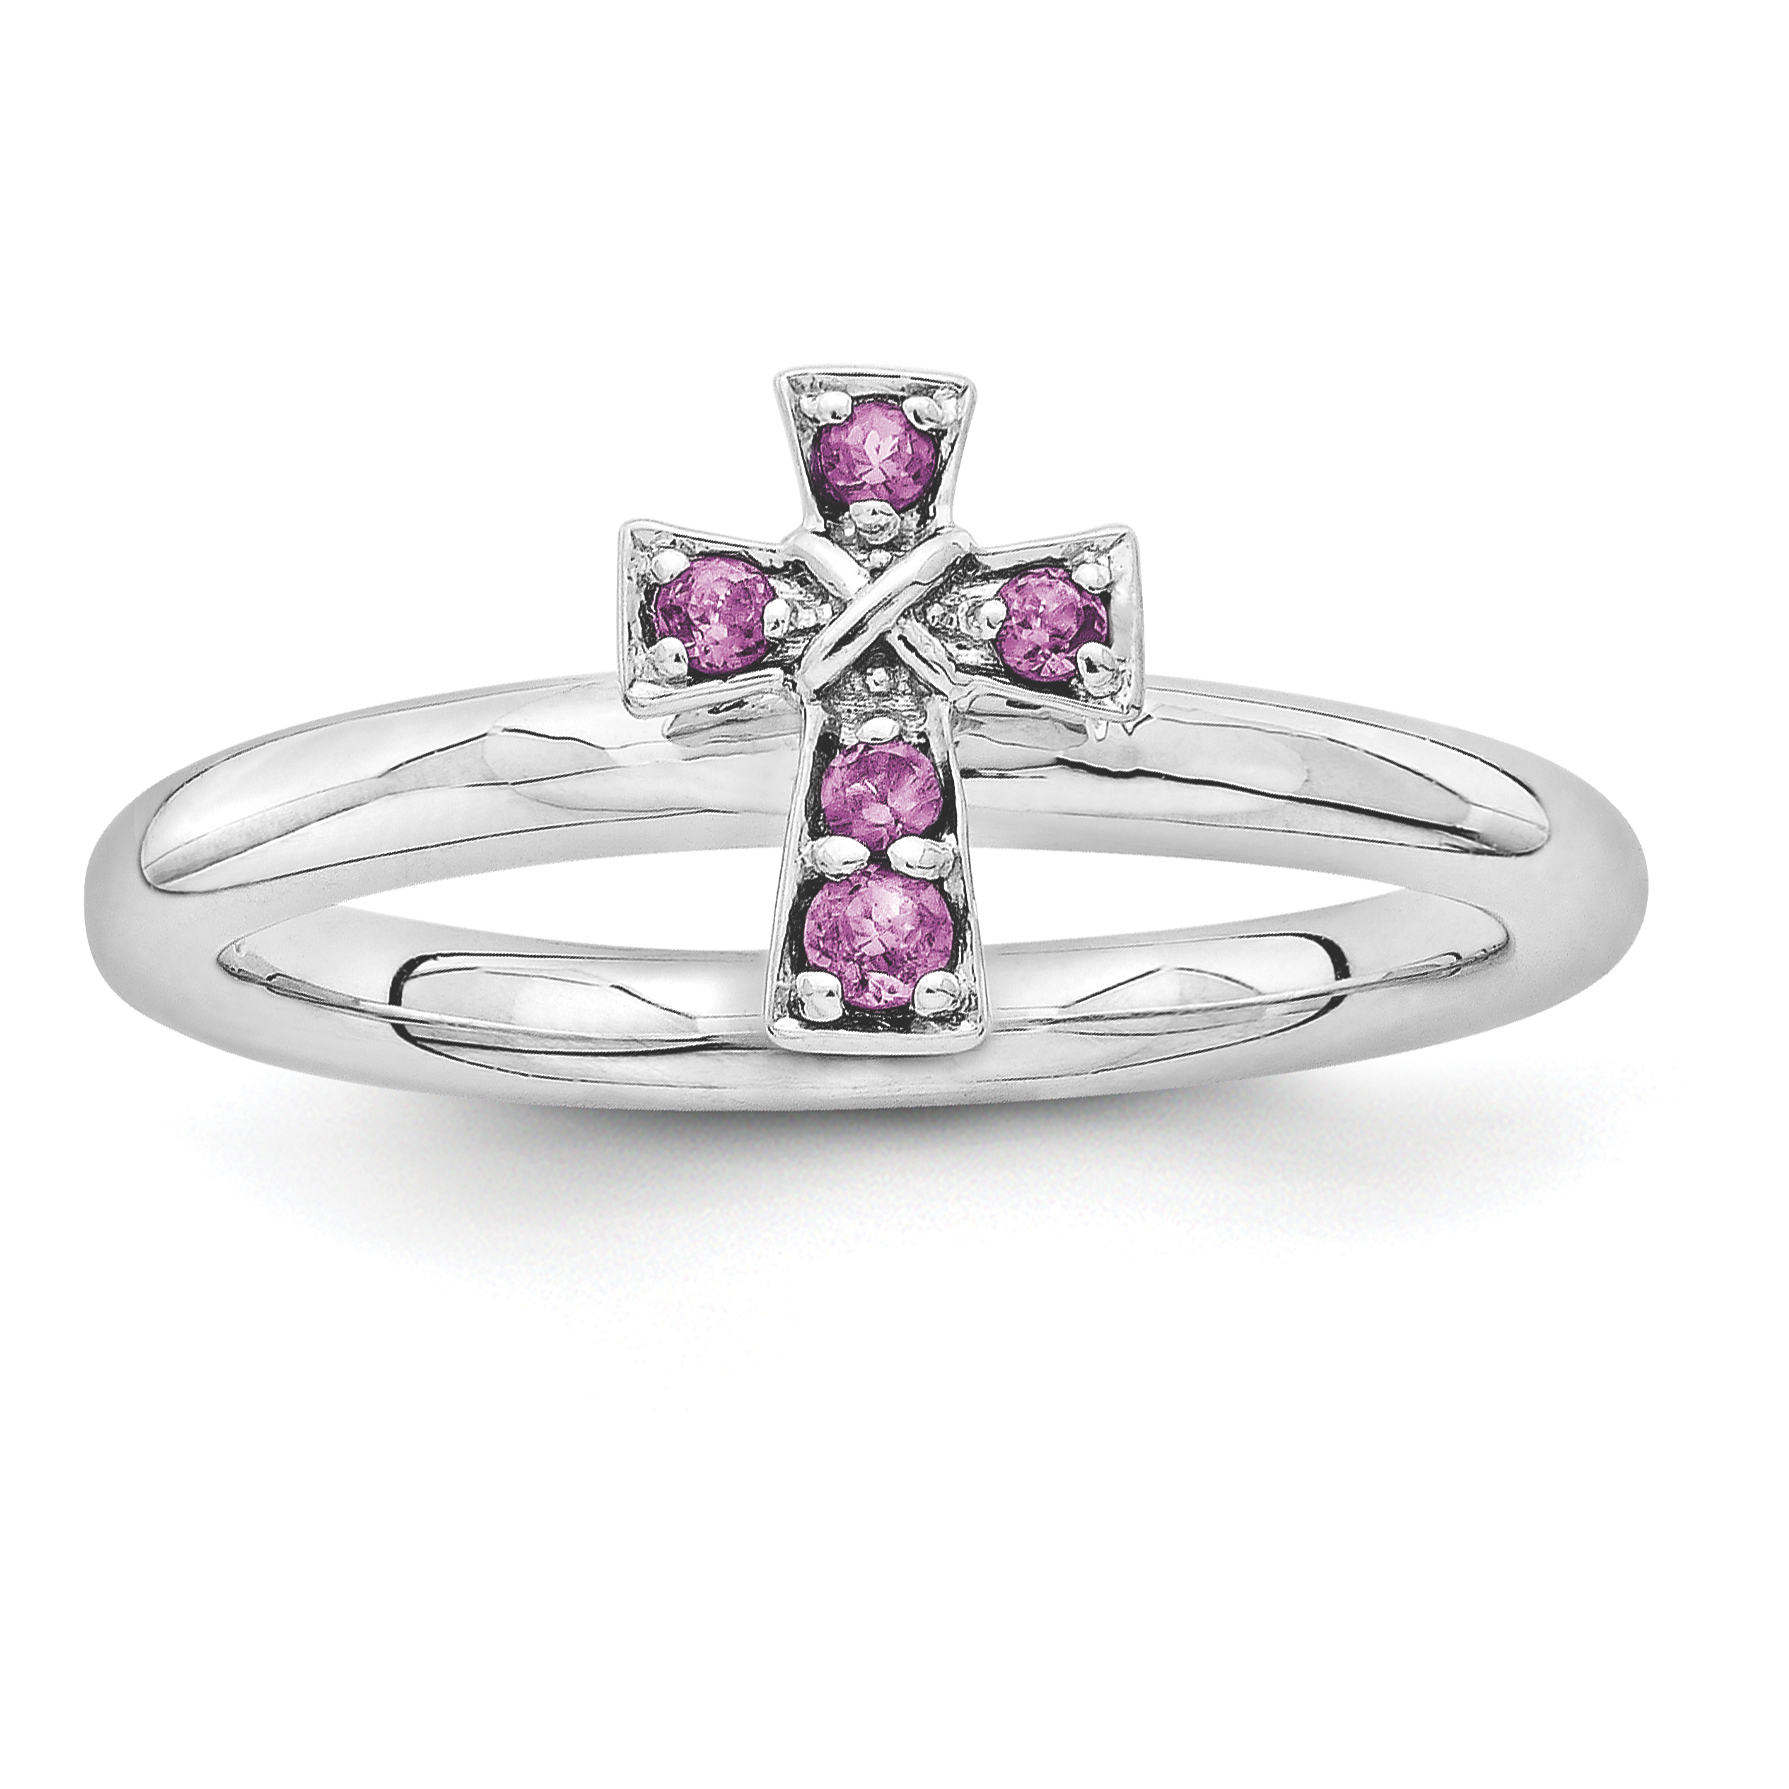 Sterling Silver Stackable Expressions Rhodium Rhodolite Garnet Cross Ring Size 6 - image 1 de 3